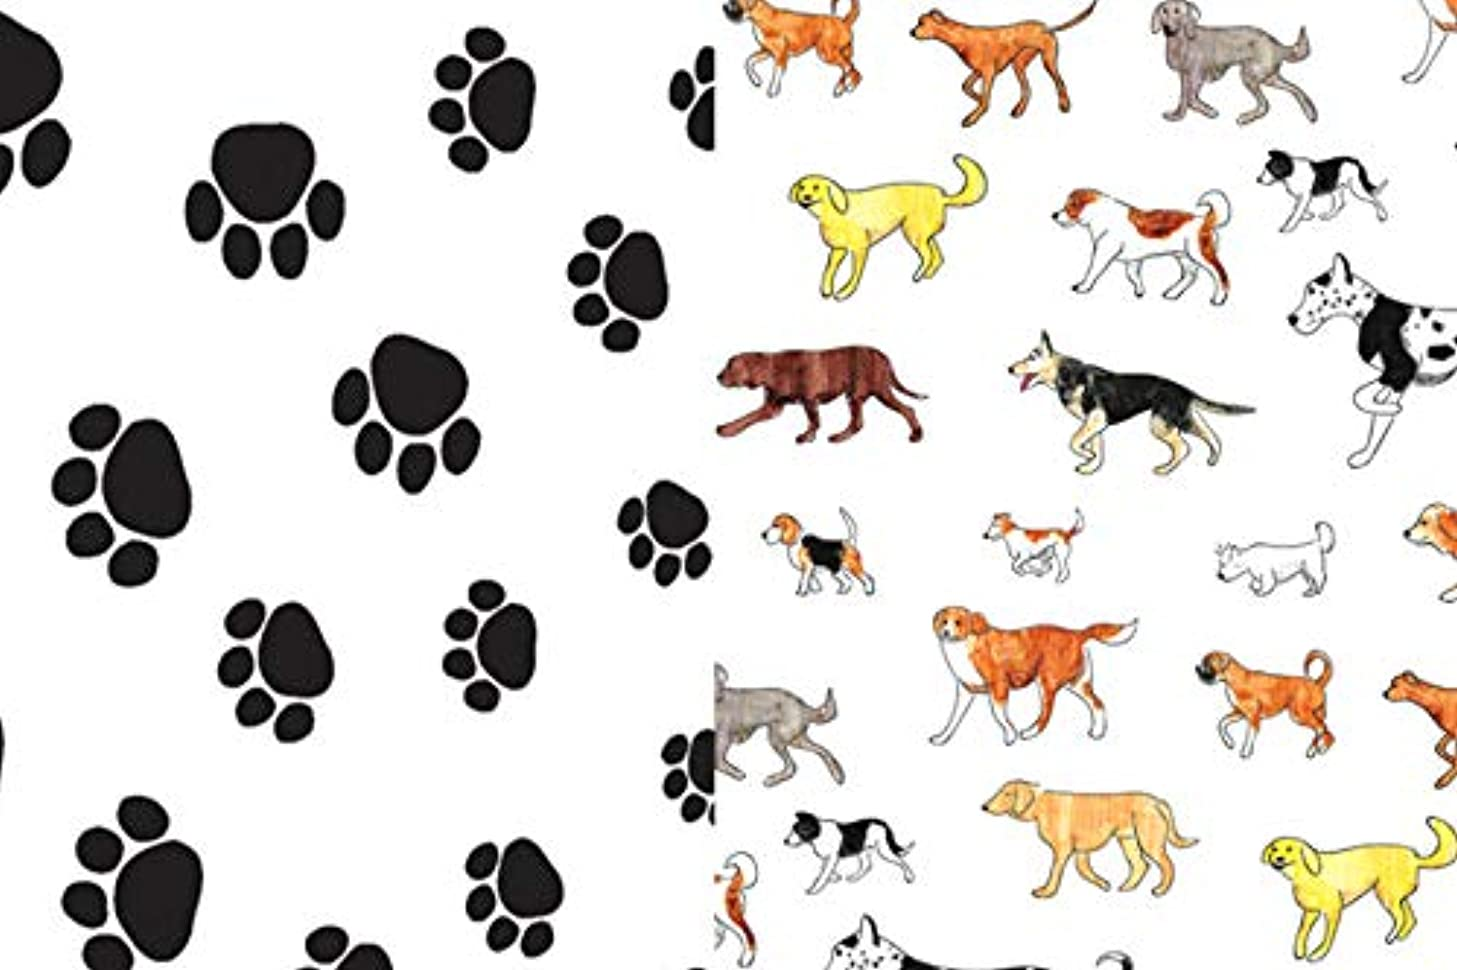 Dogs and Paw Prints Gift Wrap Tissue Paper for All Occasions. 24-Pack Includes 12 Sheets of Each Pattern. Large 20 x 30 Squares, Black, White, Multi